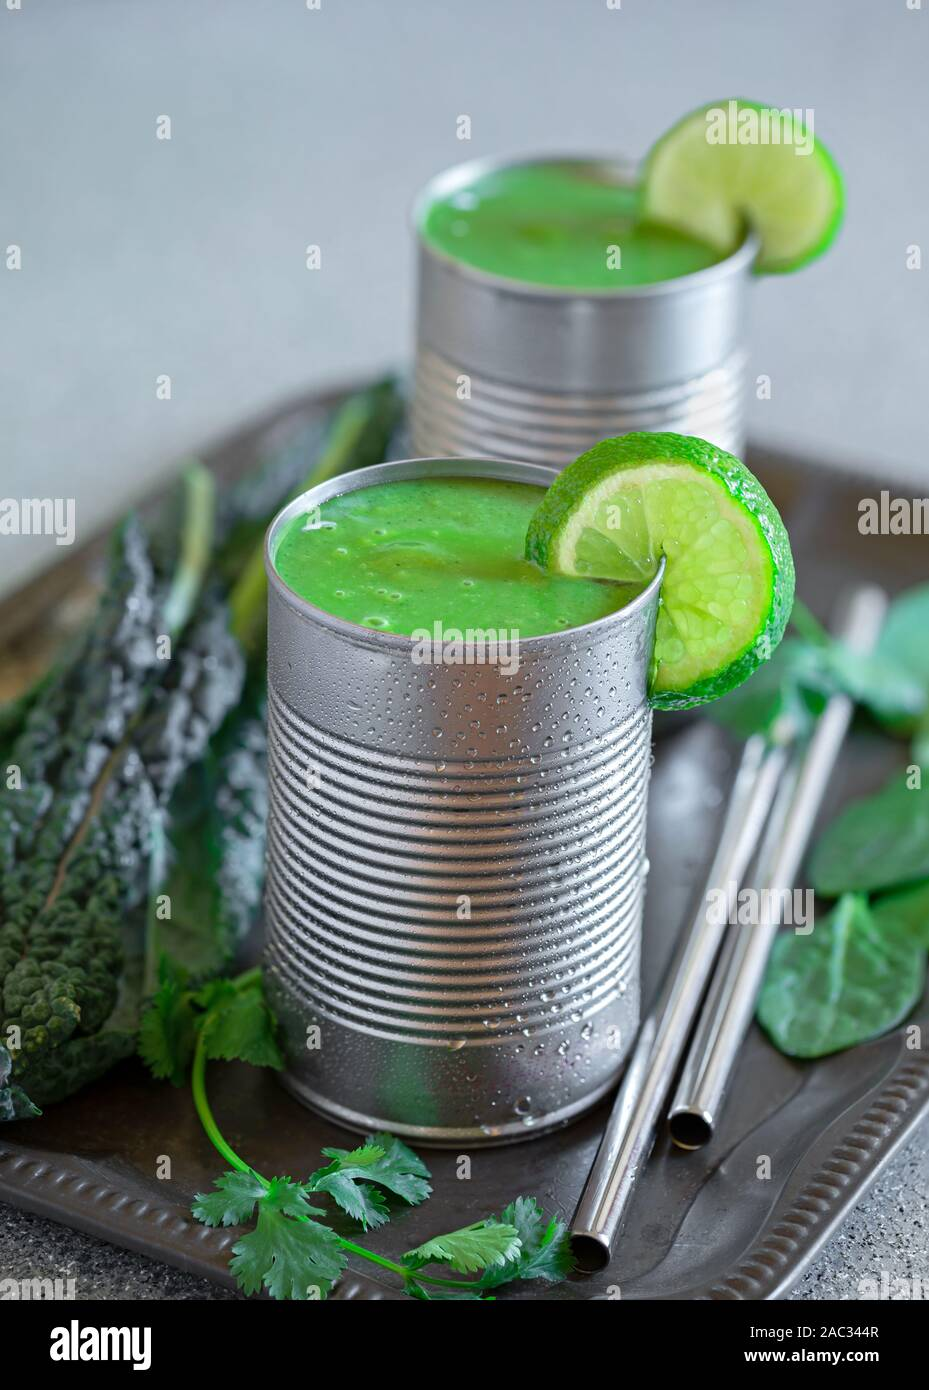 Healthy kale and spinach smoothies served in repurposed metal cans with stainless steel drinking straws Stock Photo